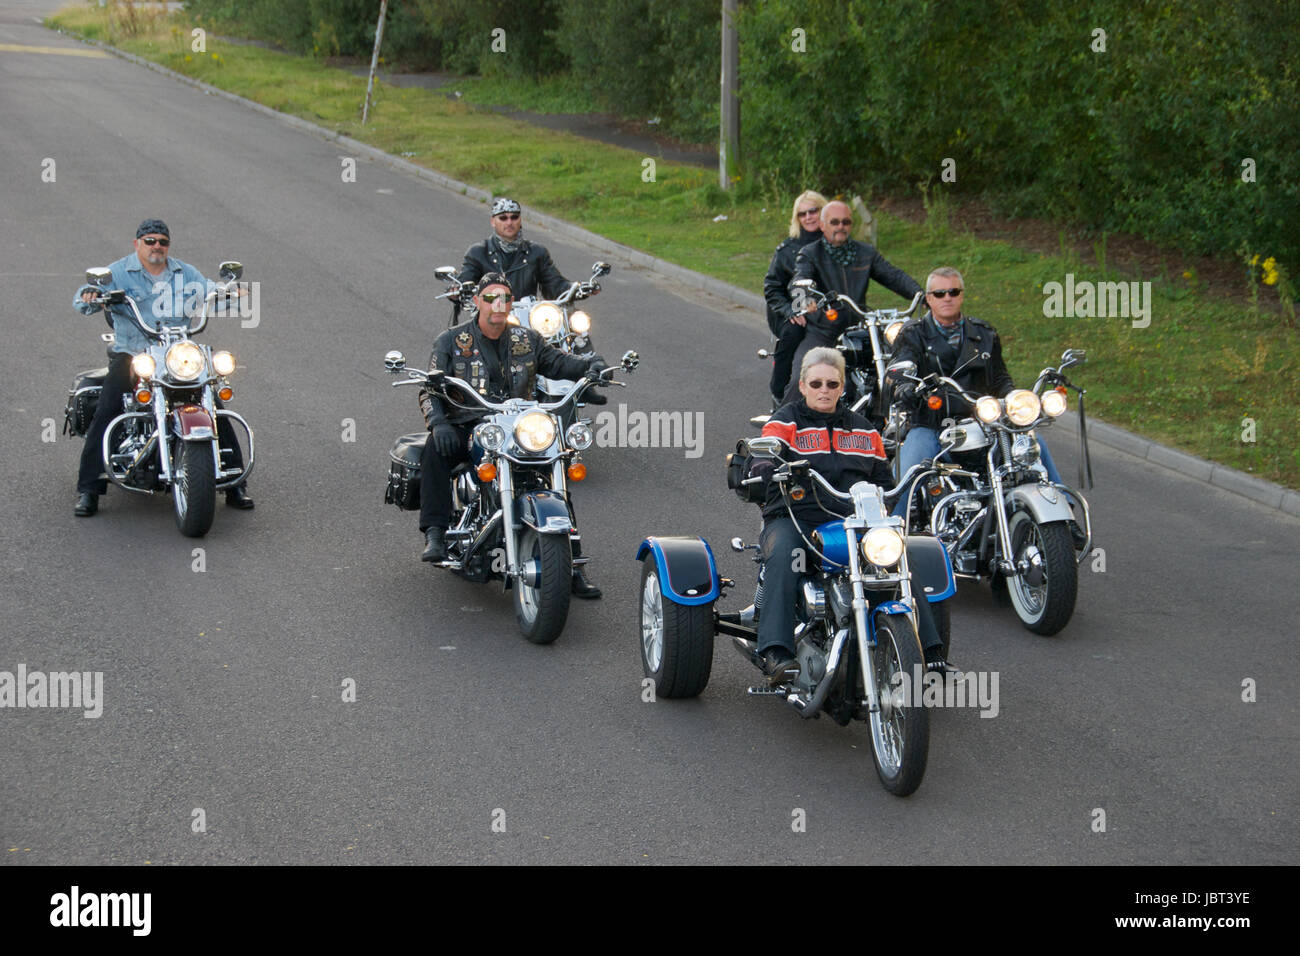 A group of Harley Davidson motorcycle and riders on the road - Stock Image